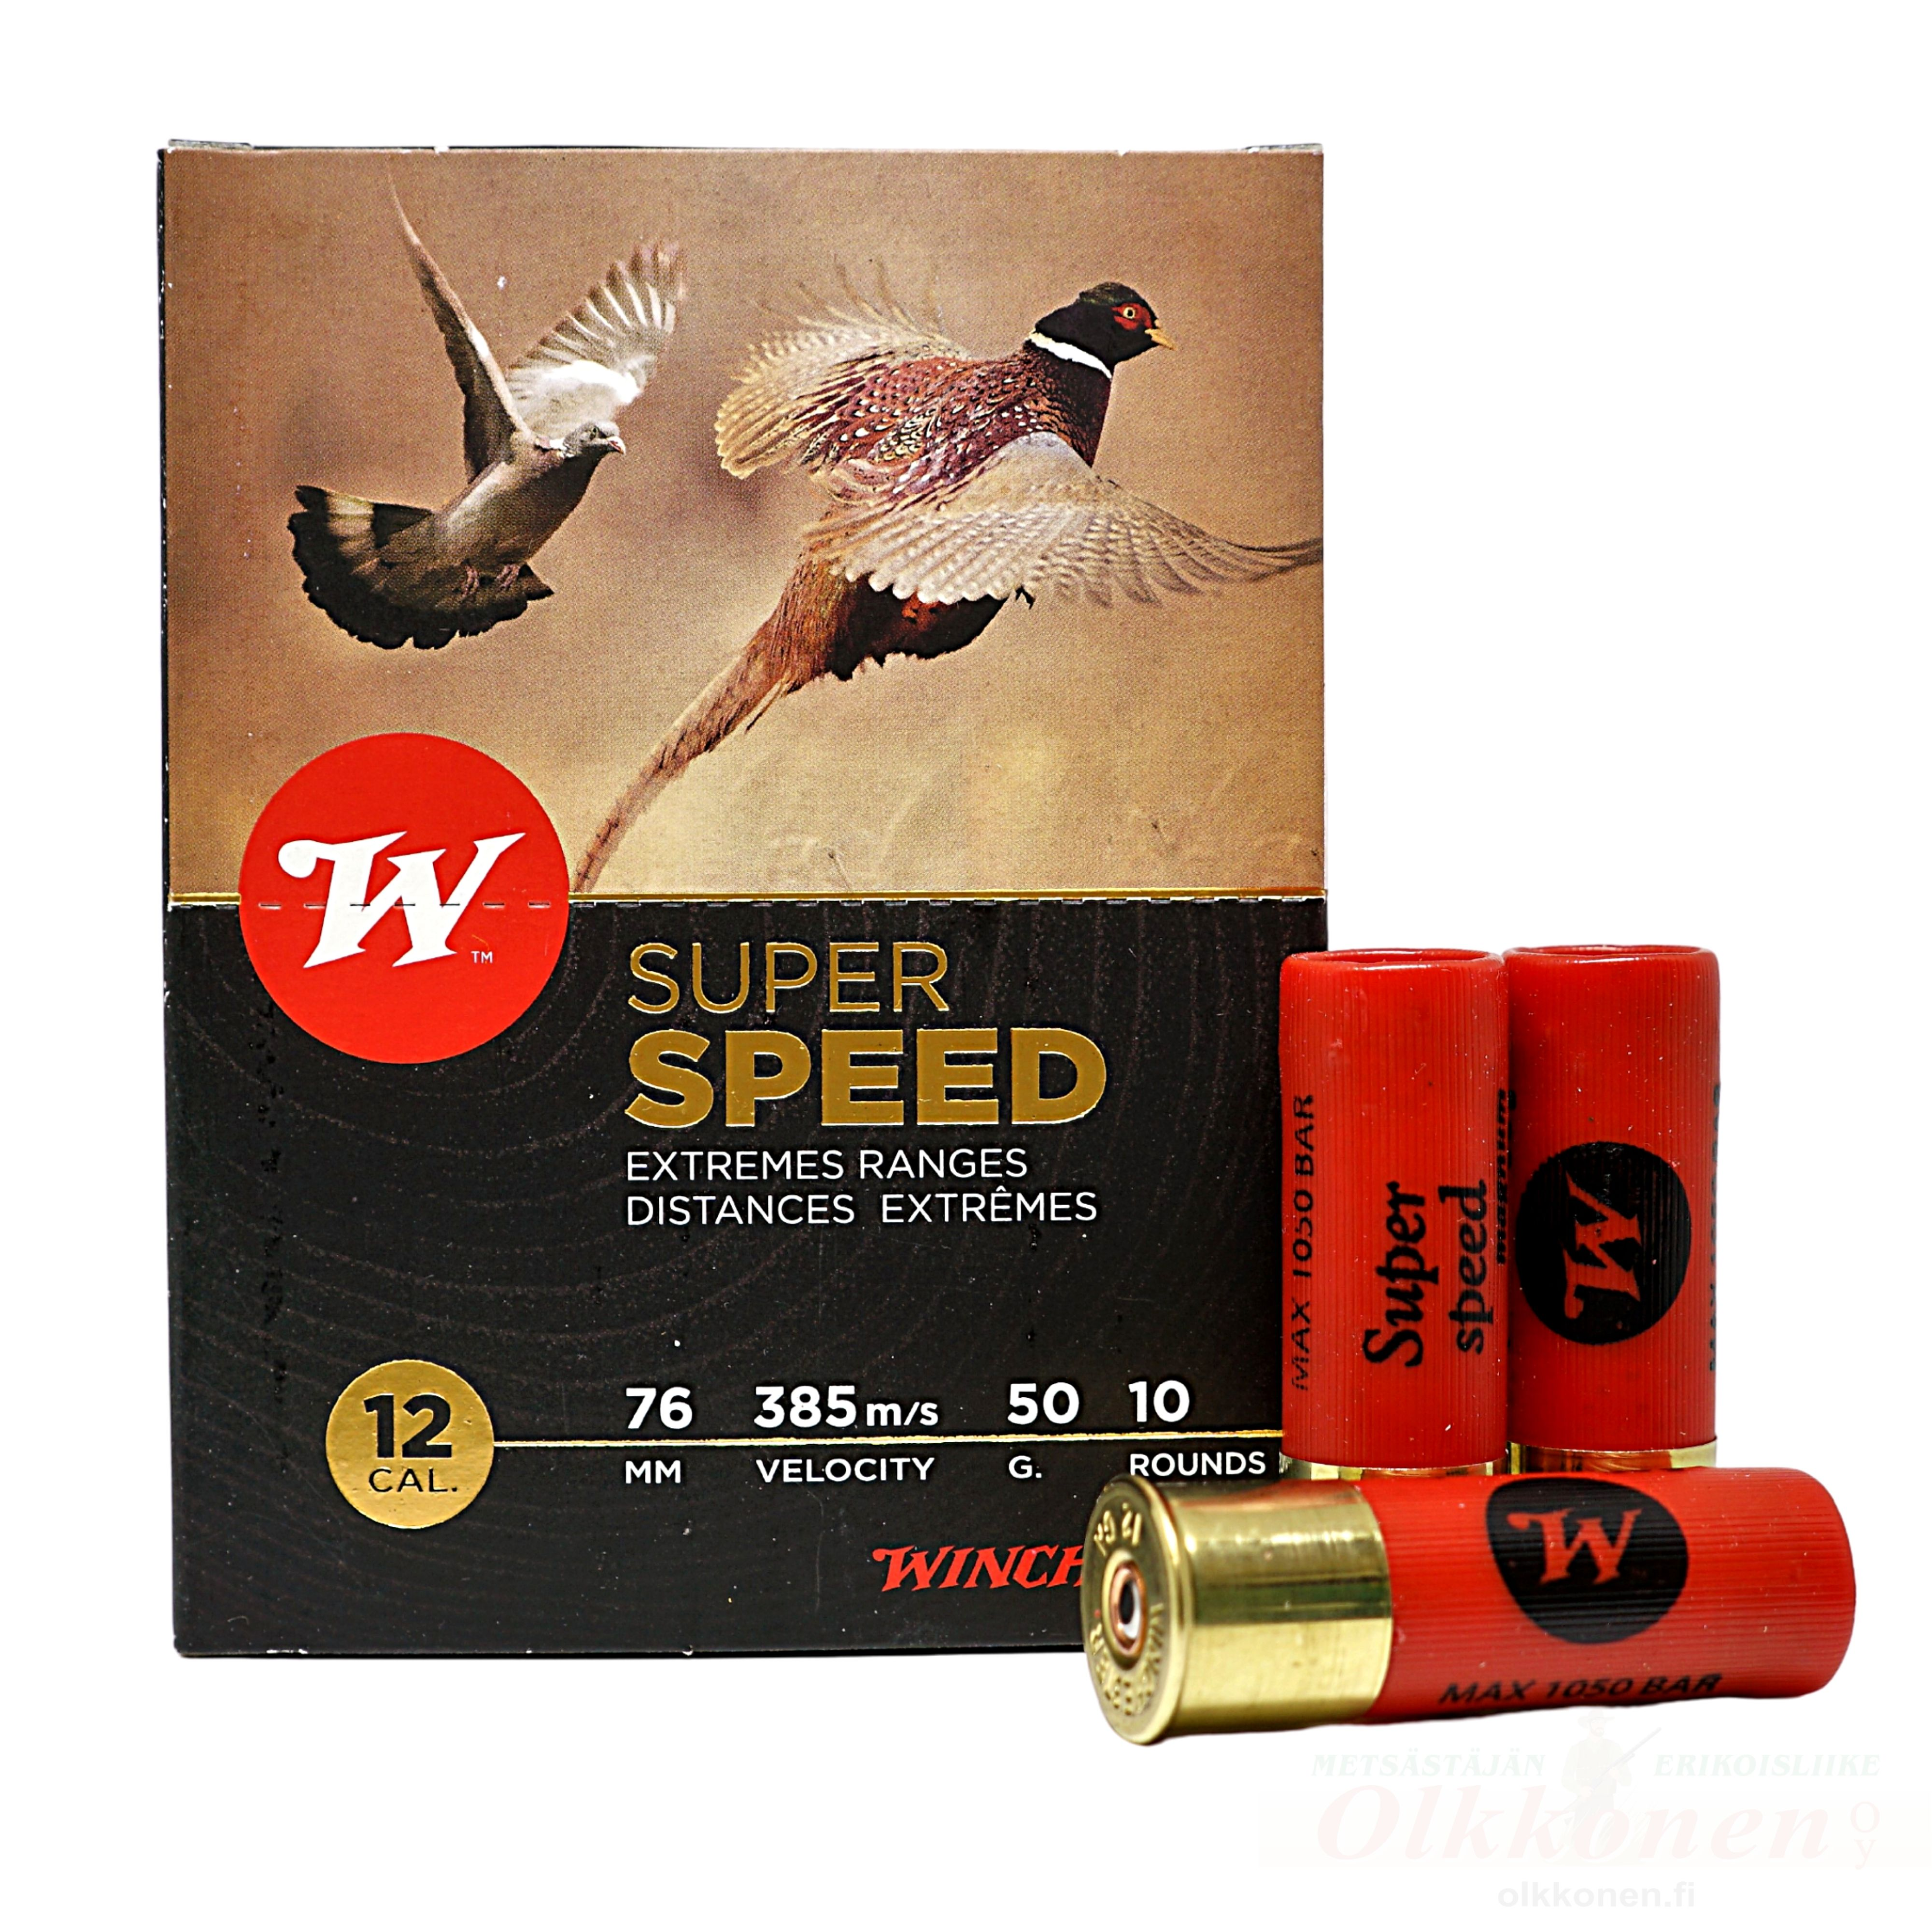 Winchester Super Speed G2 12/76 50g